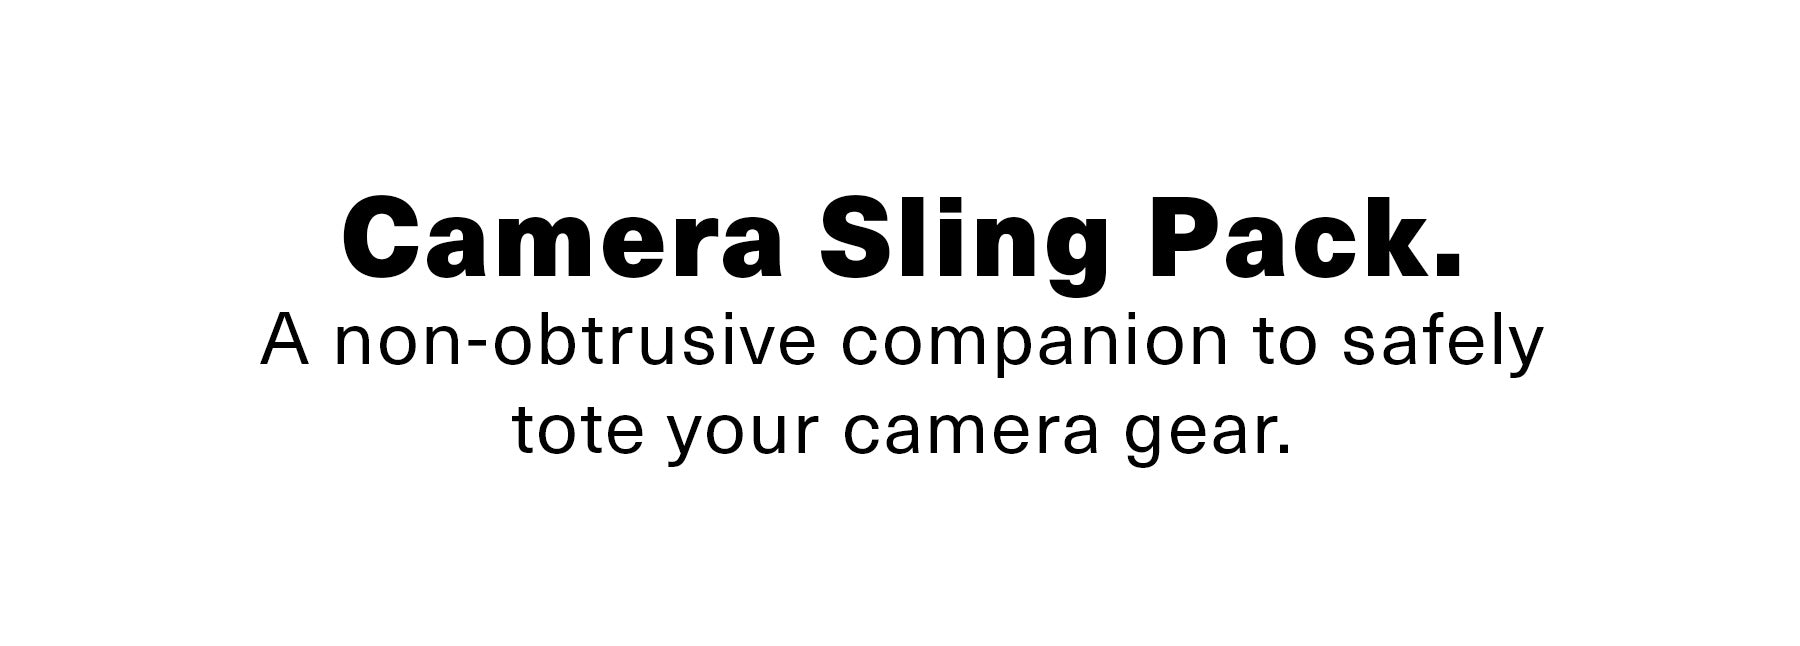 sleepwalk camera sling pack, a non-obtrusive companion to safely tote your camera gear.